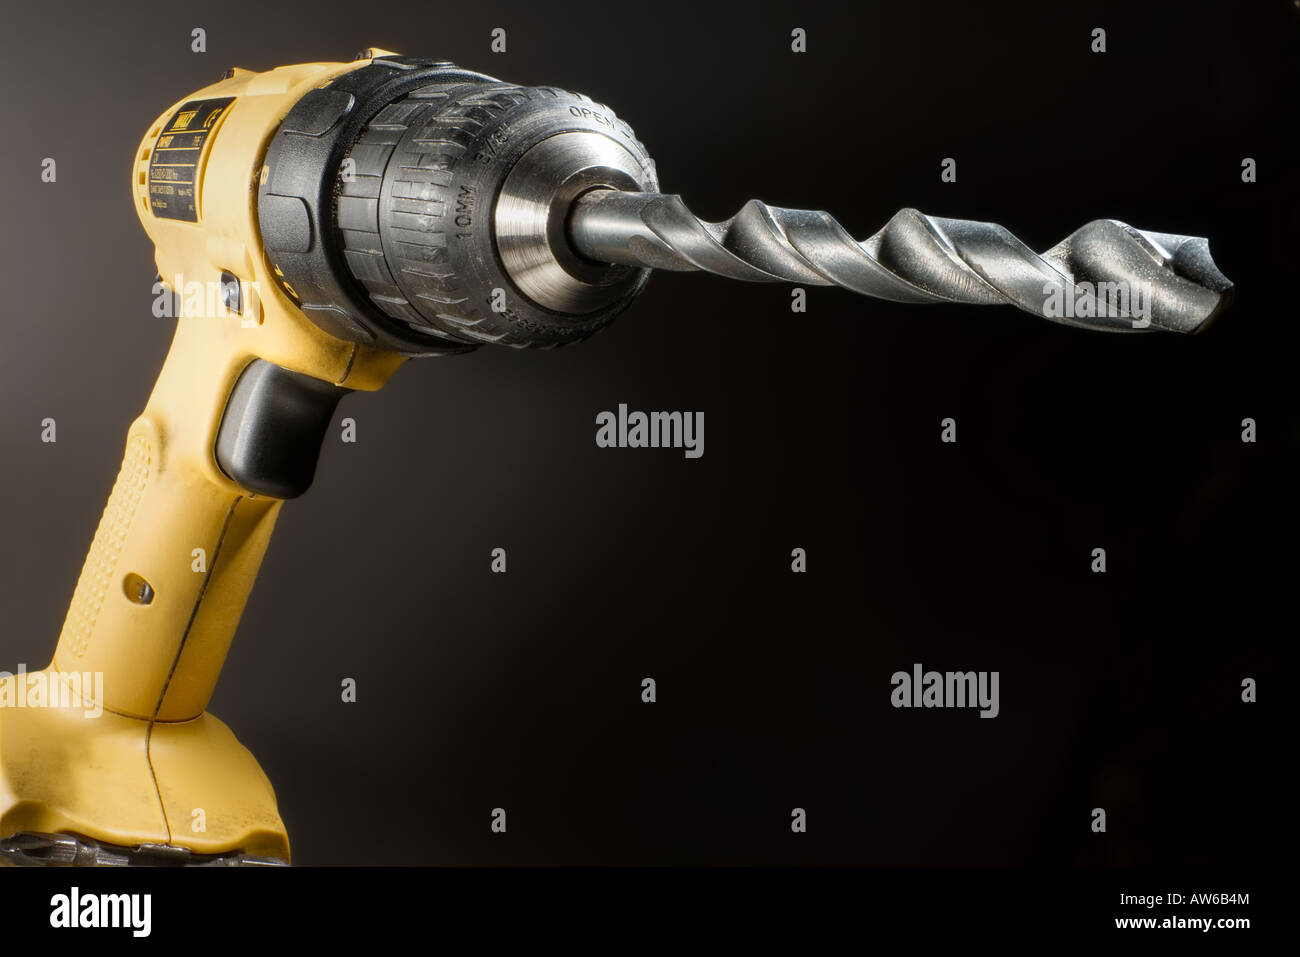 Battery operated hand drill with a drill bit - Stock Image